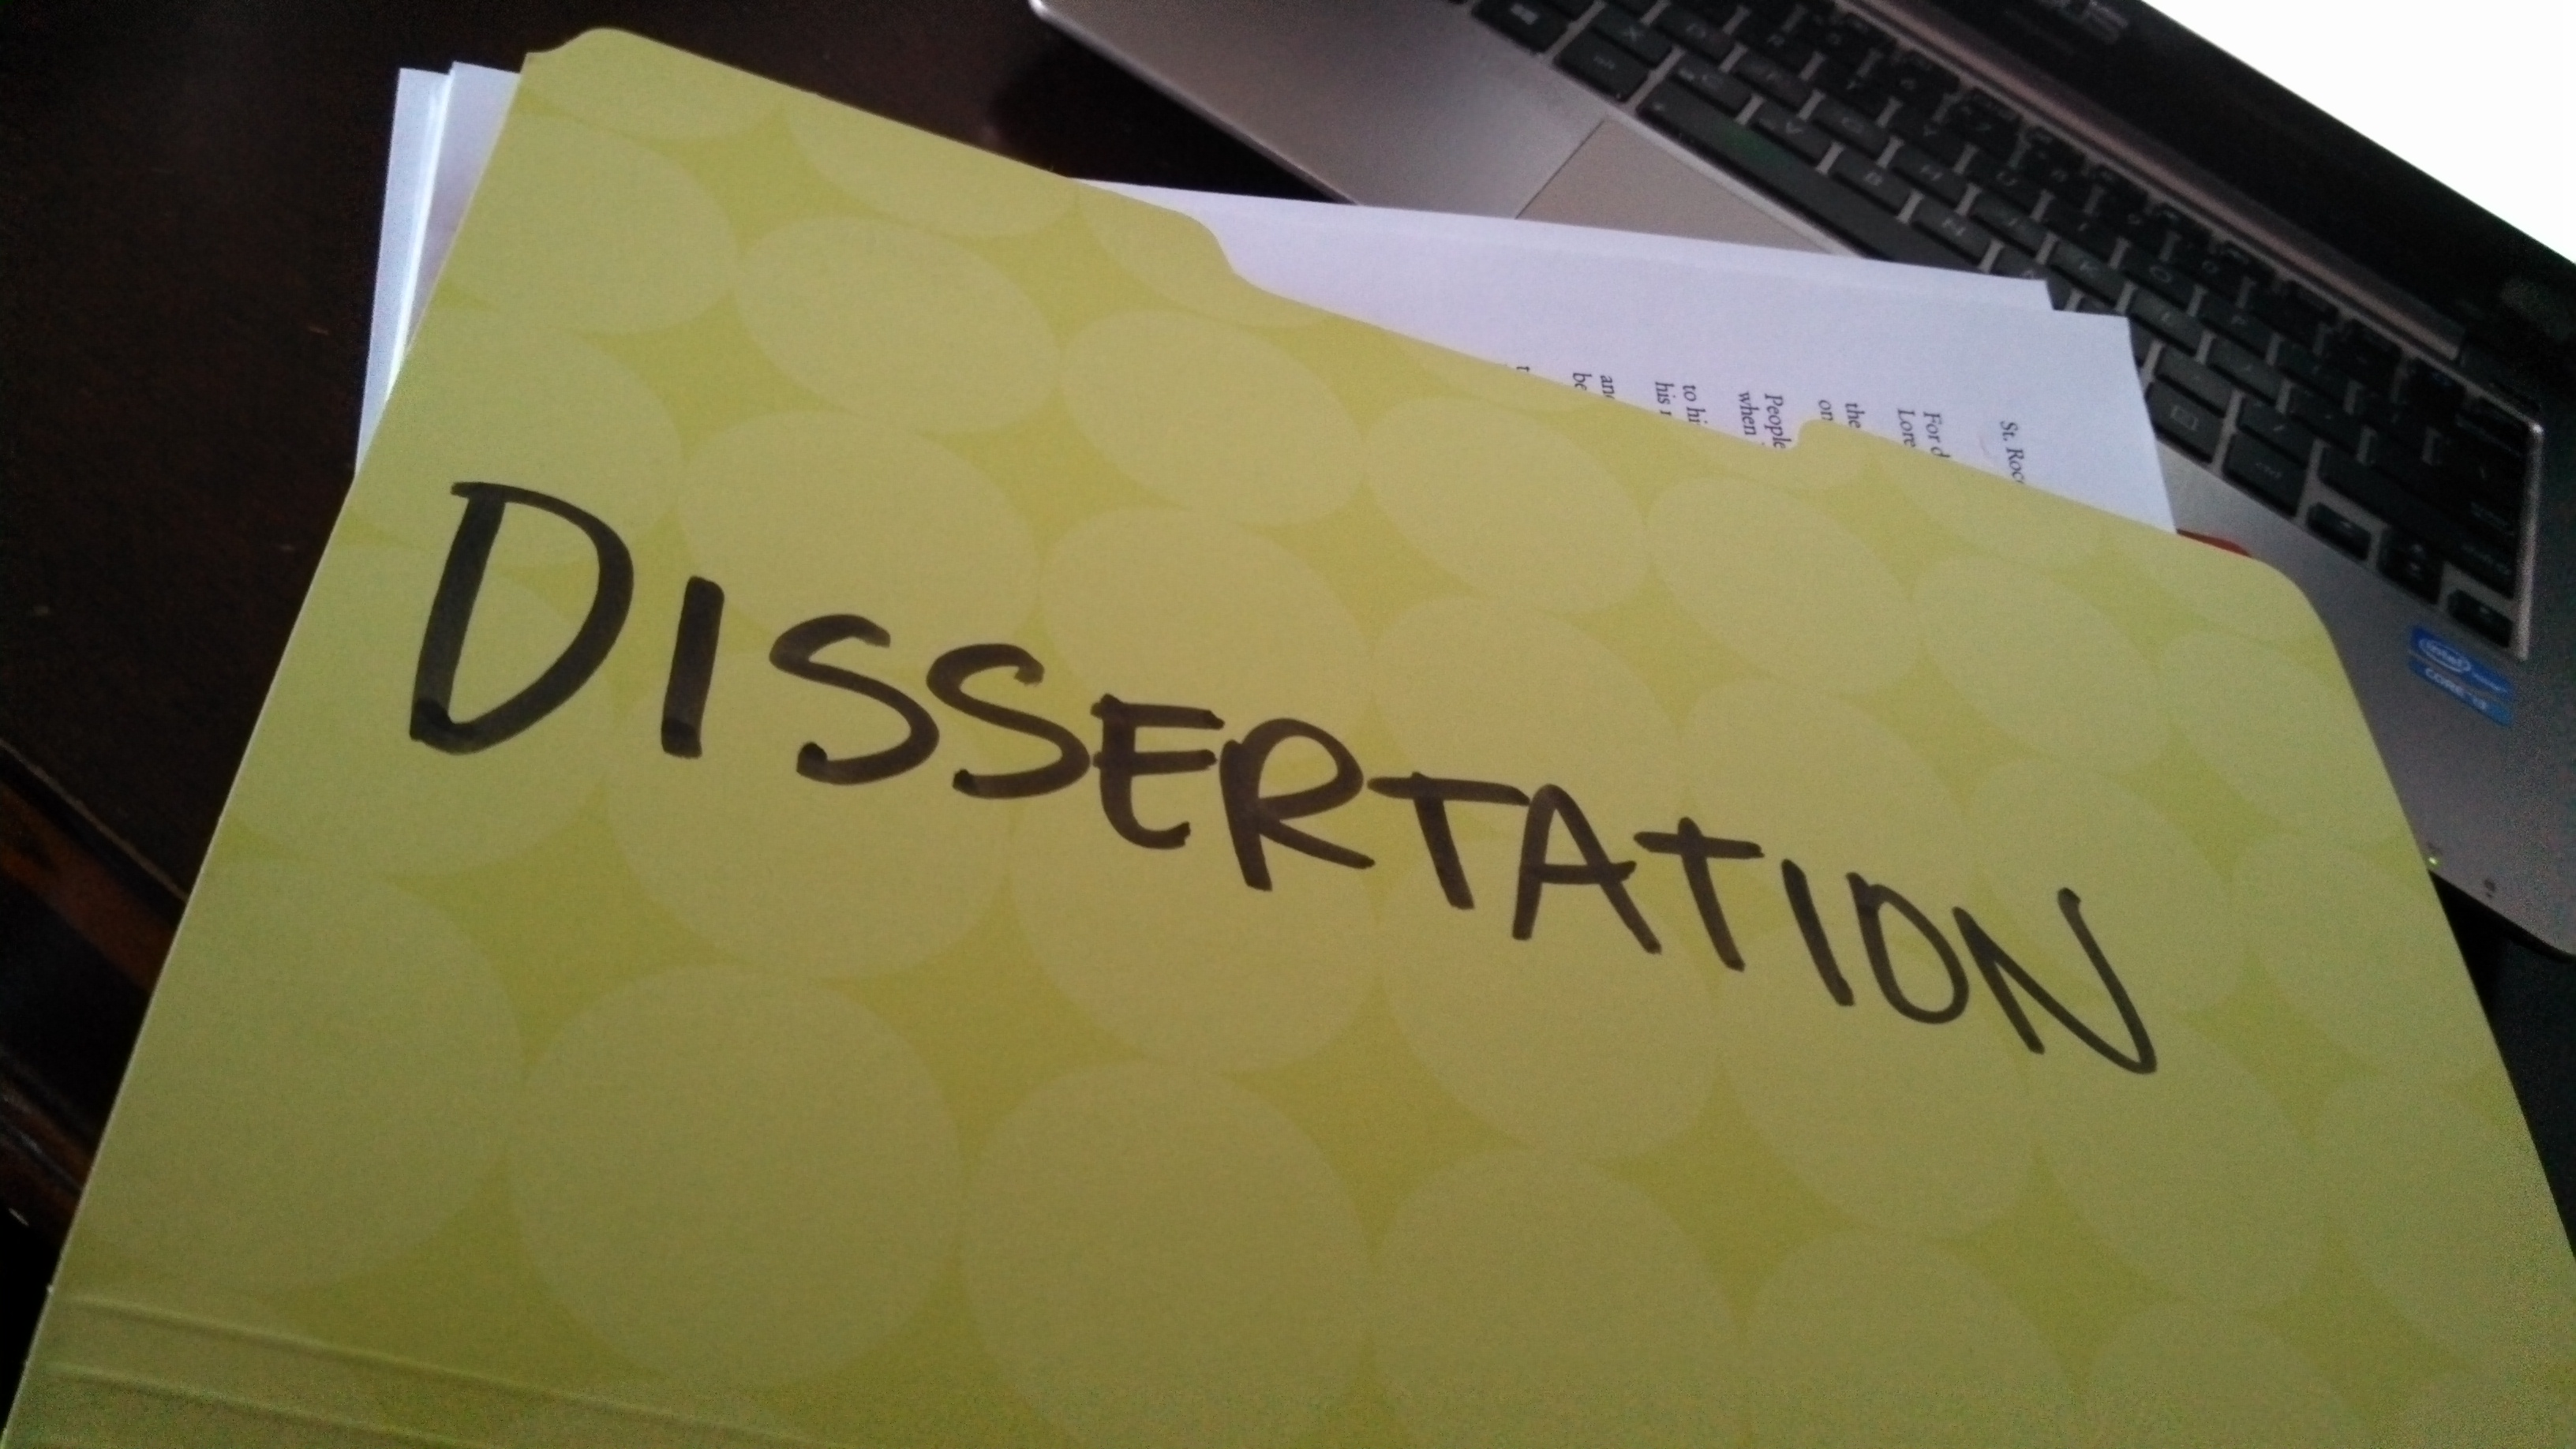 ... dissertations the first step of how to start a dissertation is to